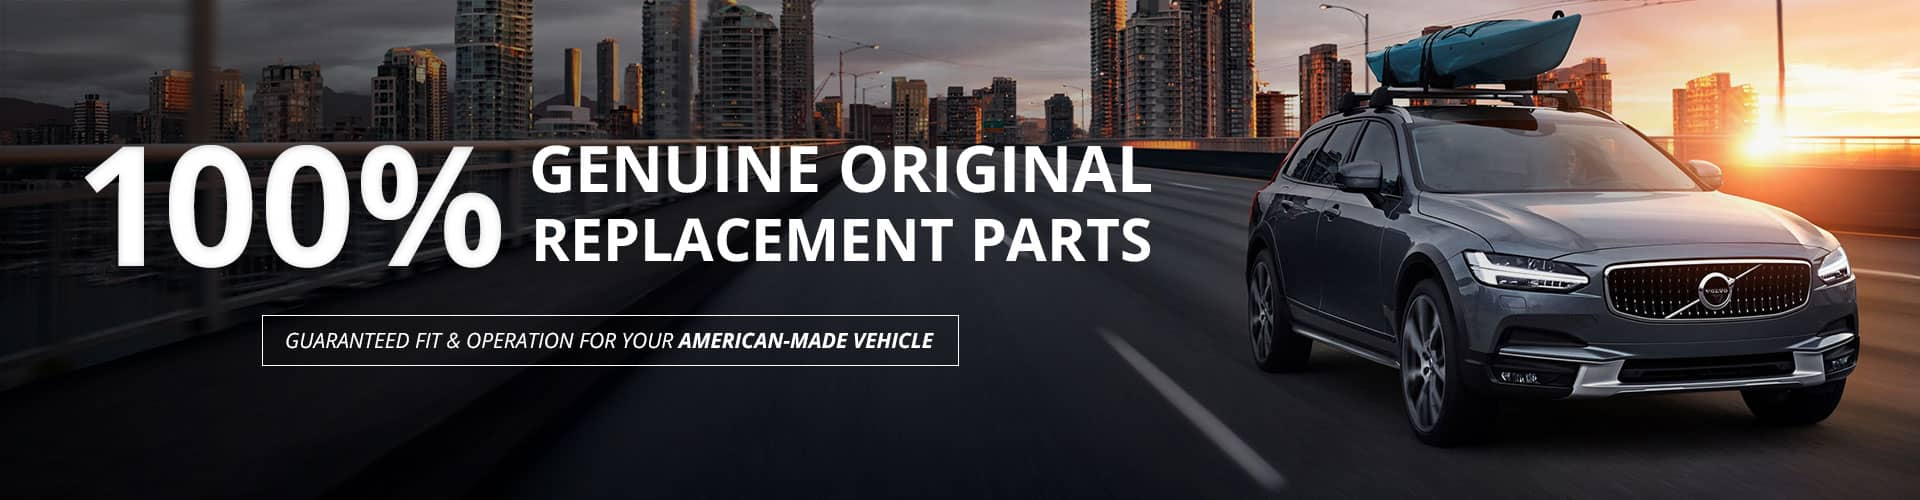 100% Genuine Original Replacement Parts